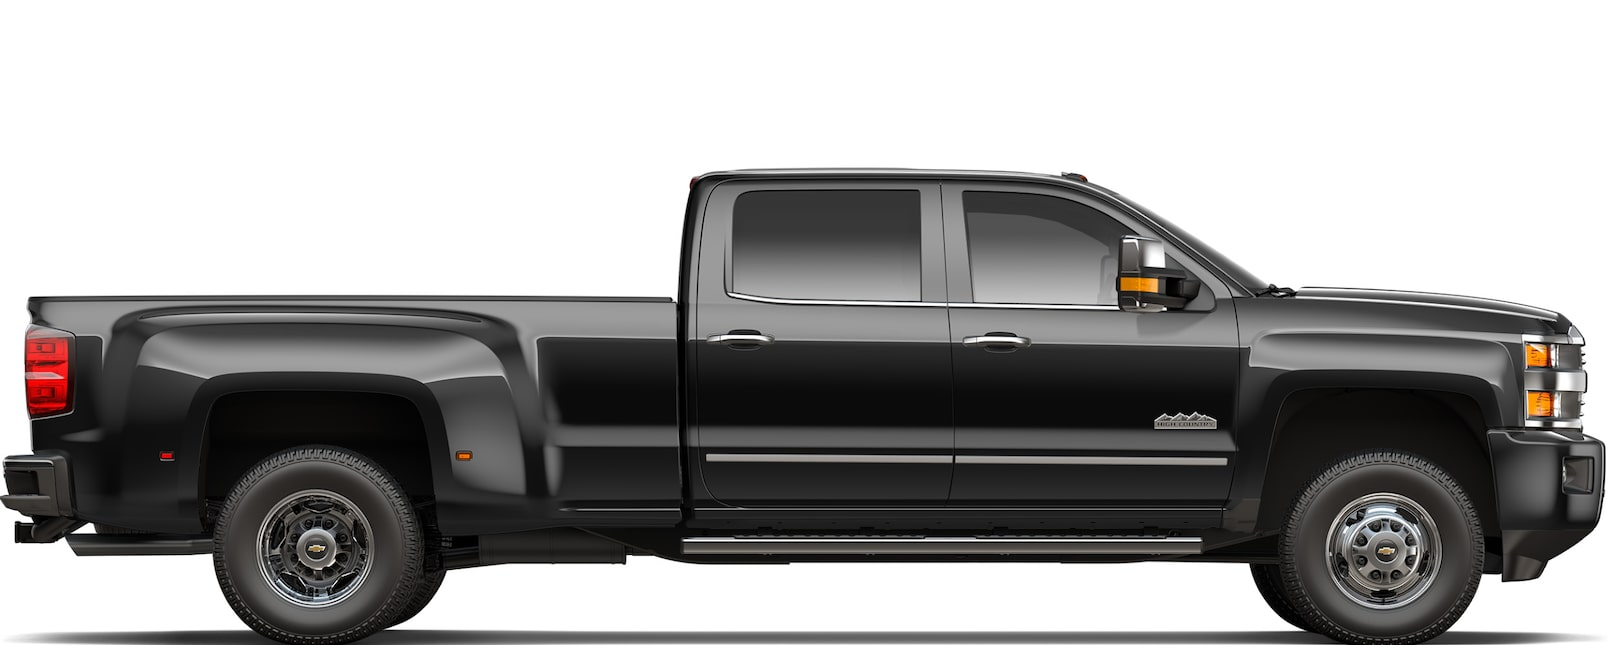 Reaper Silverado >> Chevy Silverado Miles Per Gallon | Autos Post